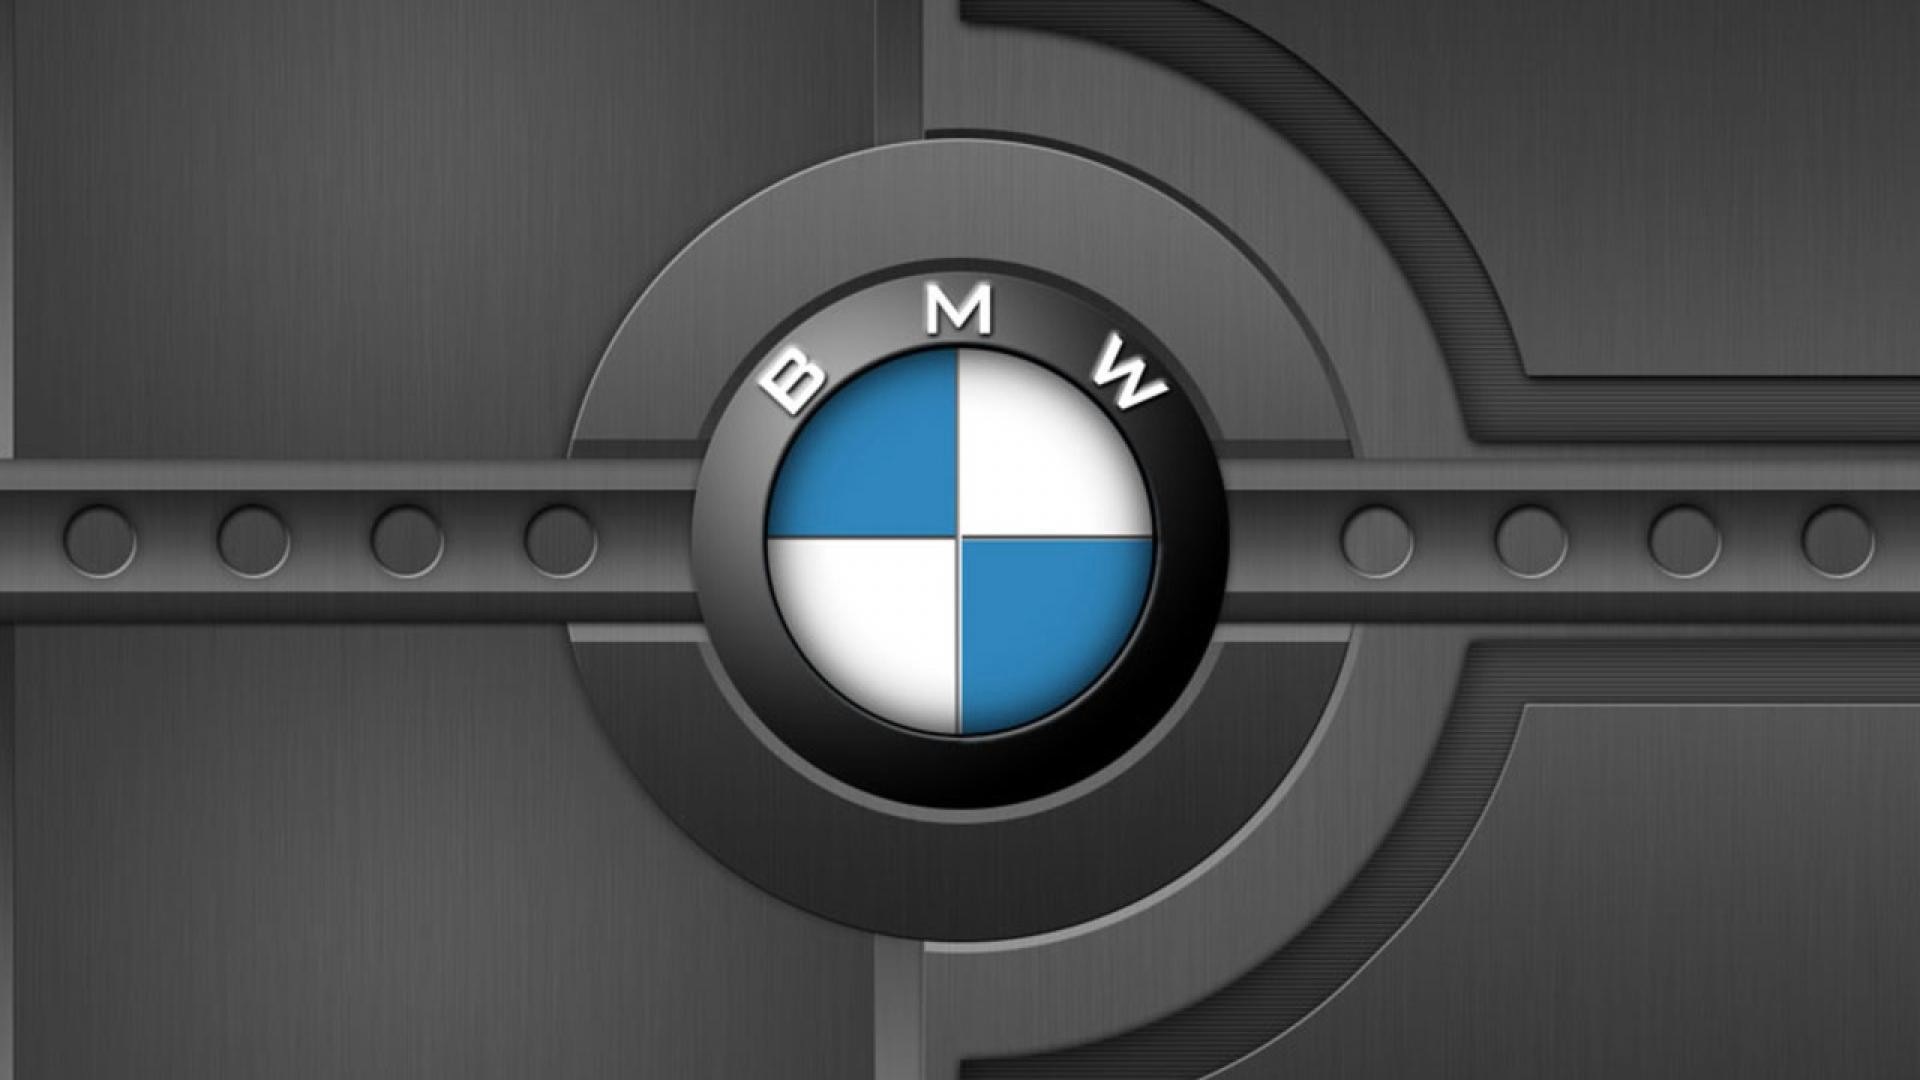 Most Viewed Symbol Wallpapers: BMW M Logo Wallpaper (62+ Images